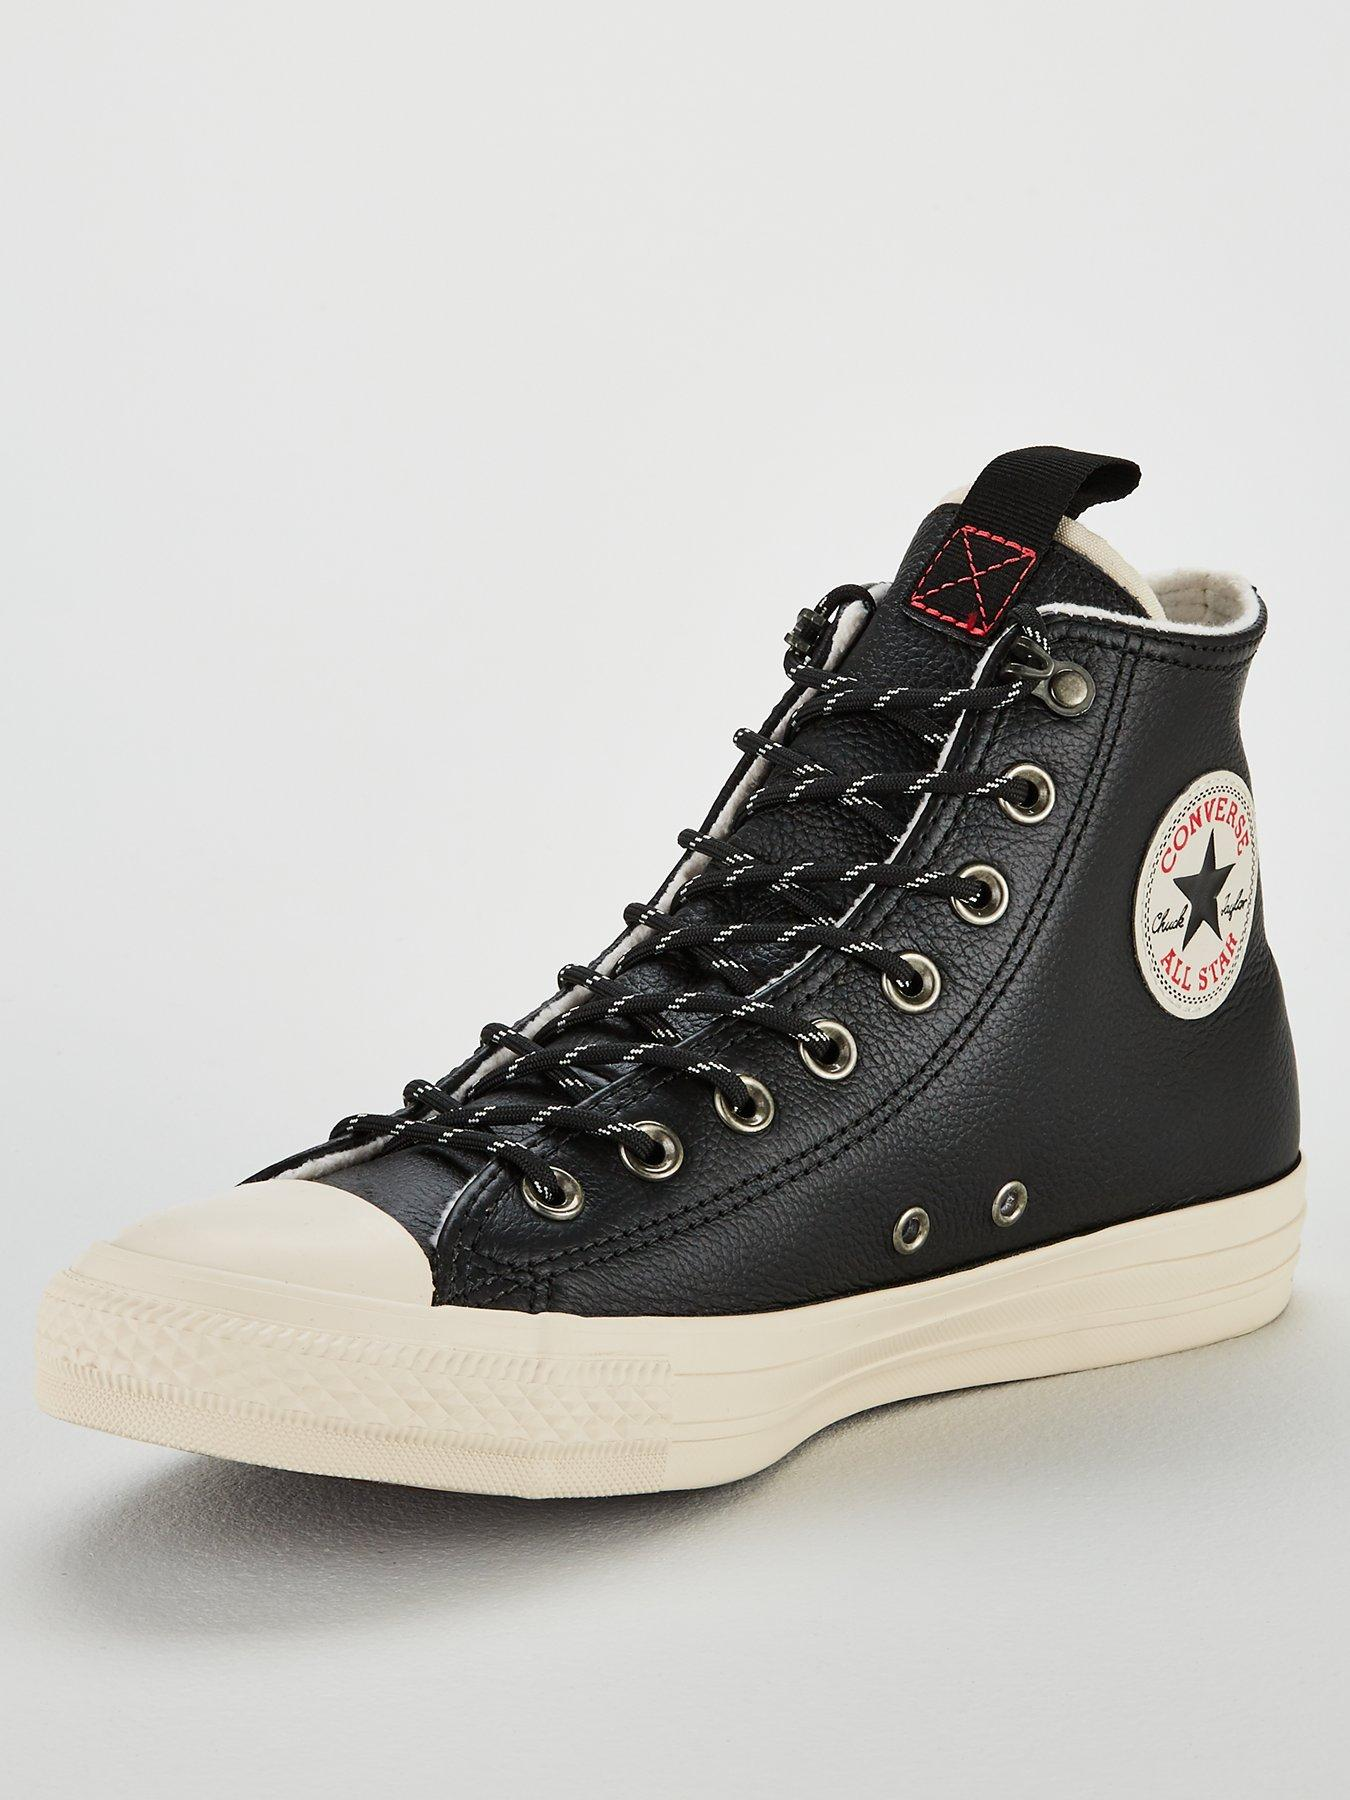 1da70b885ccc ... wholesale converse chuck taylor all star leather hi tops 117fc 01c3a